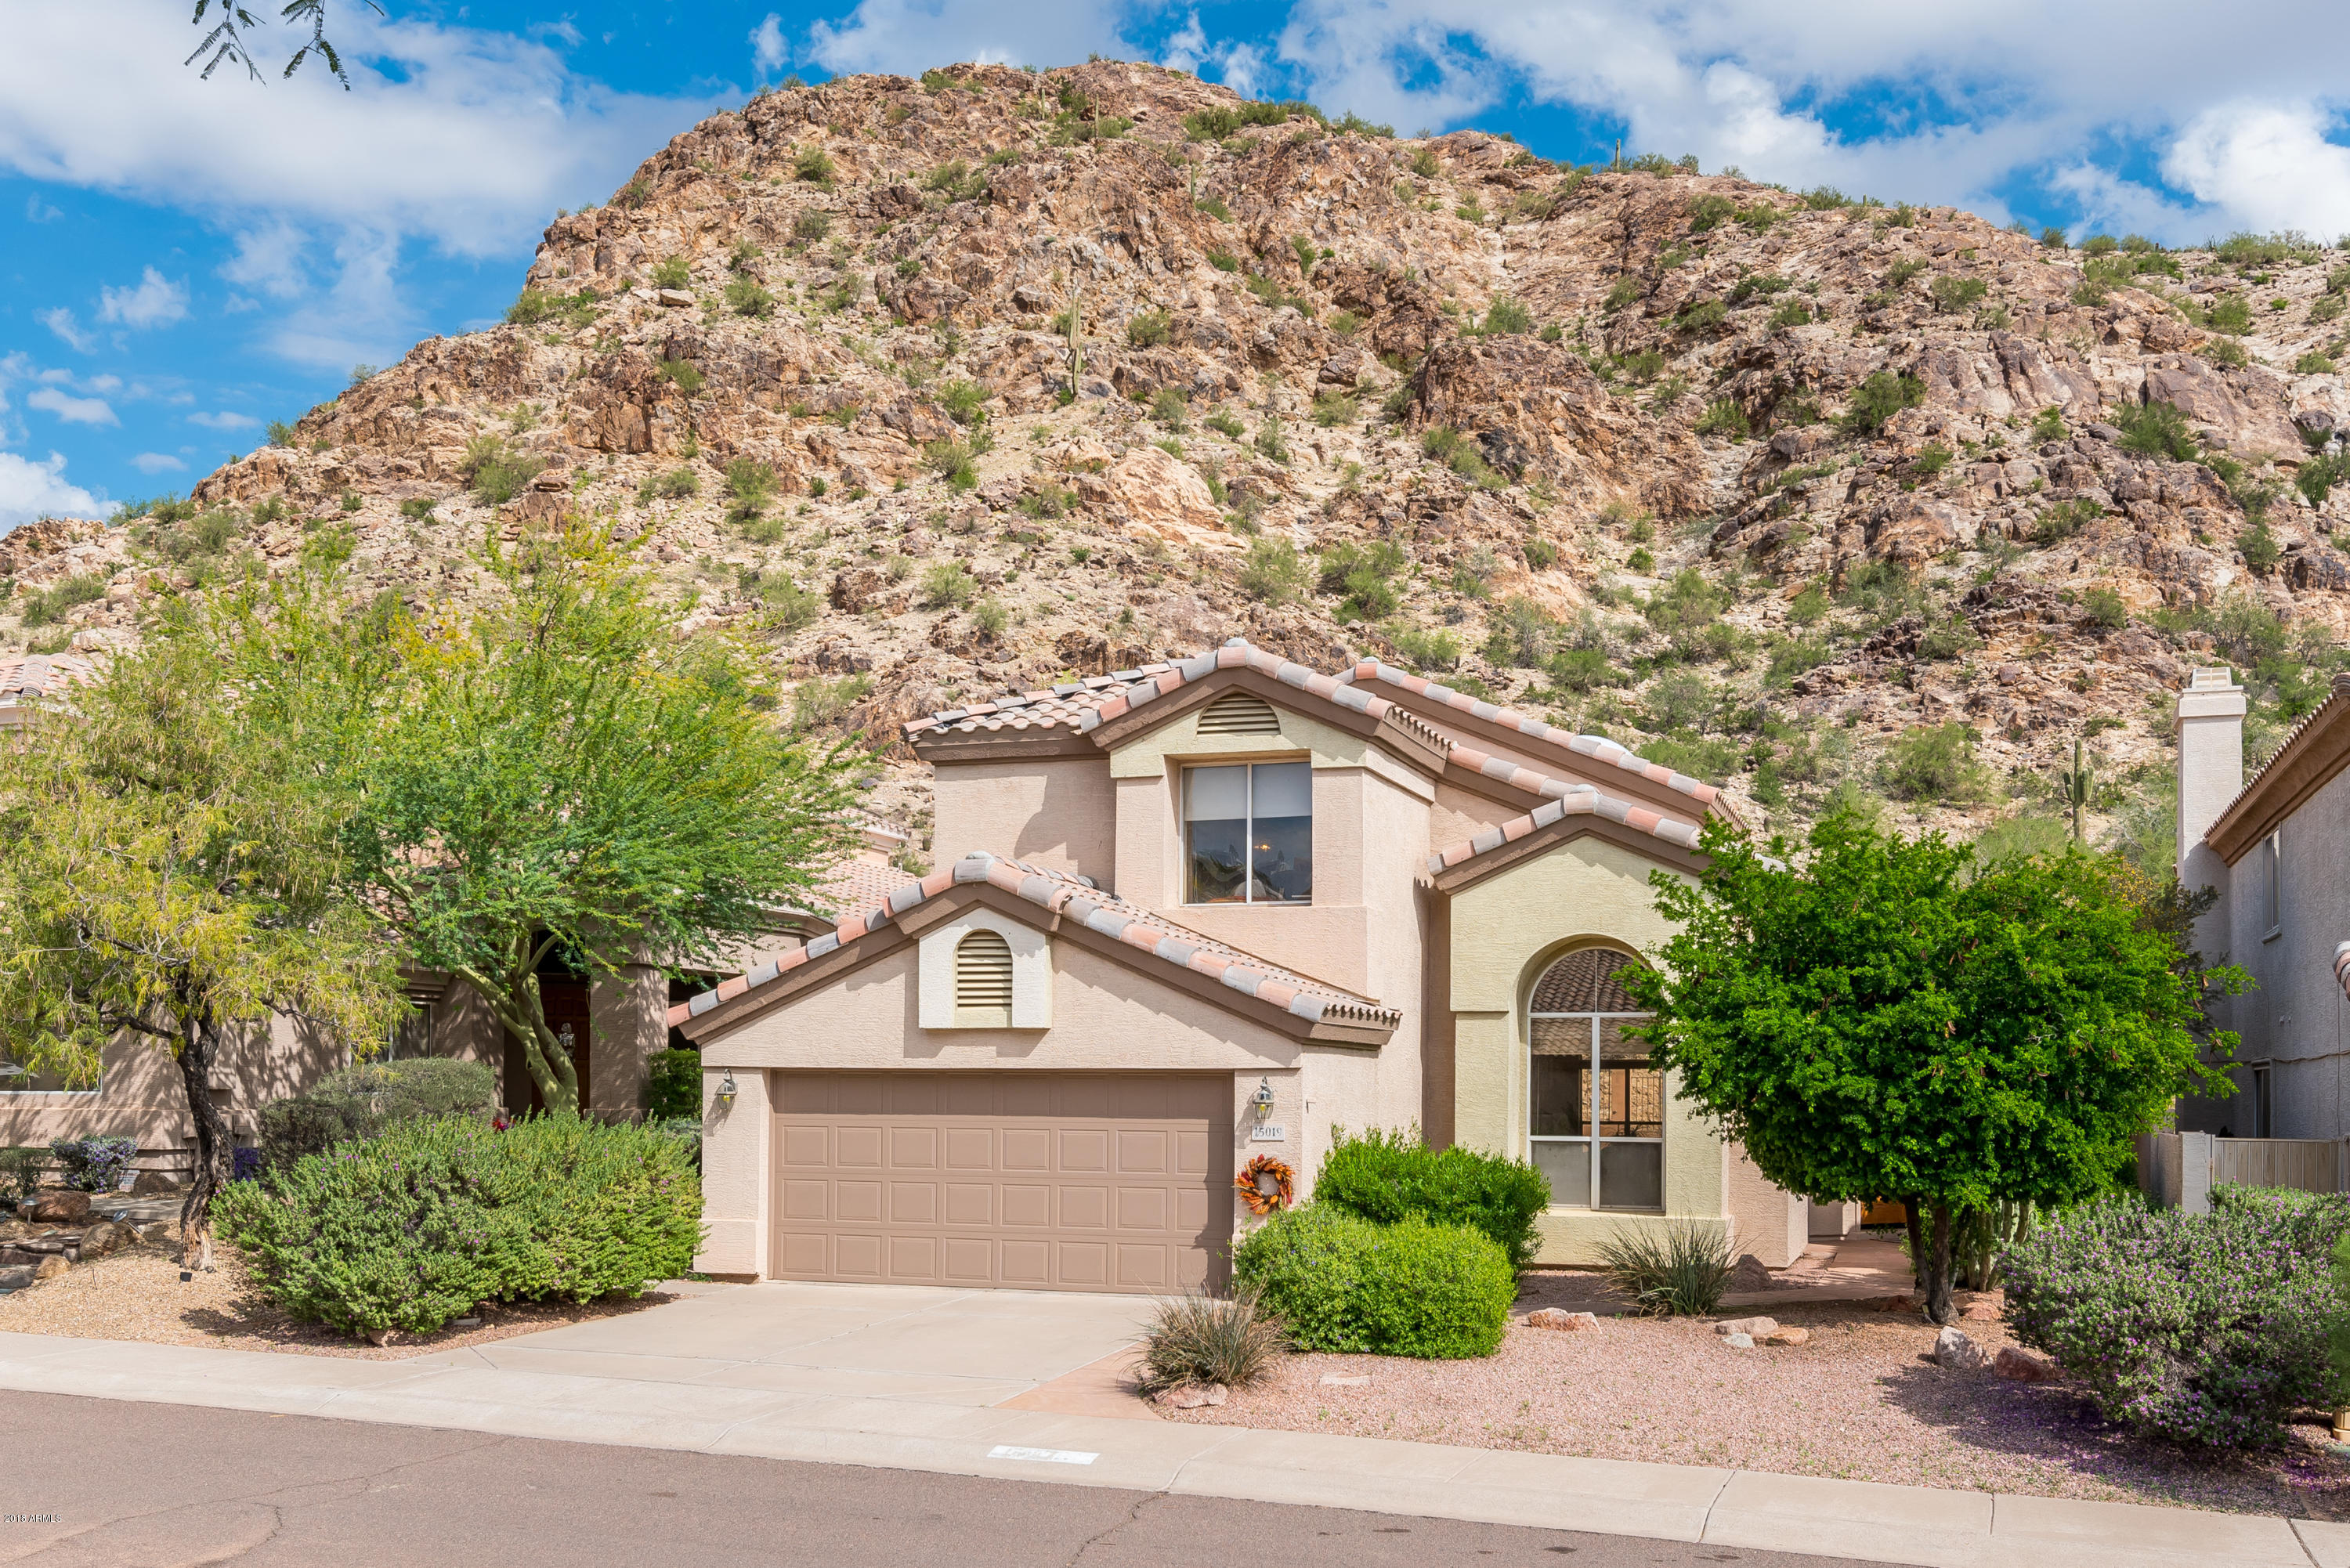 MLS 5836140 15019 S 14TH Place, Phoenix, AZ 85048 Phoenix AZ The Foothills